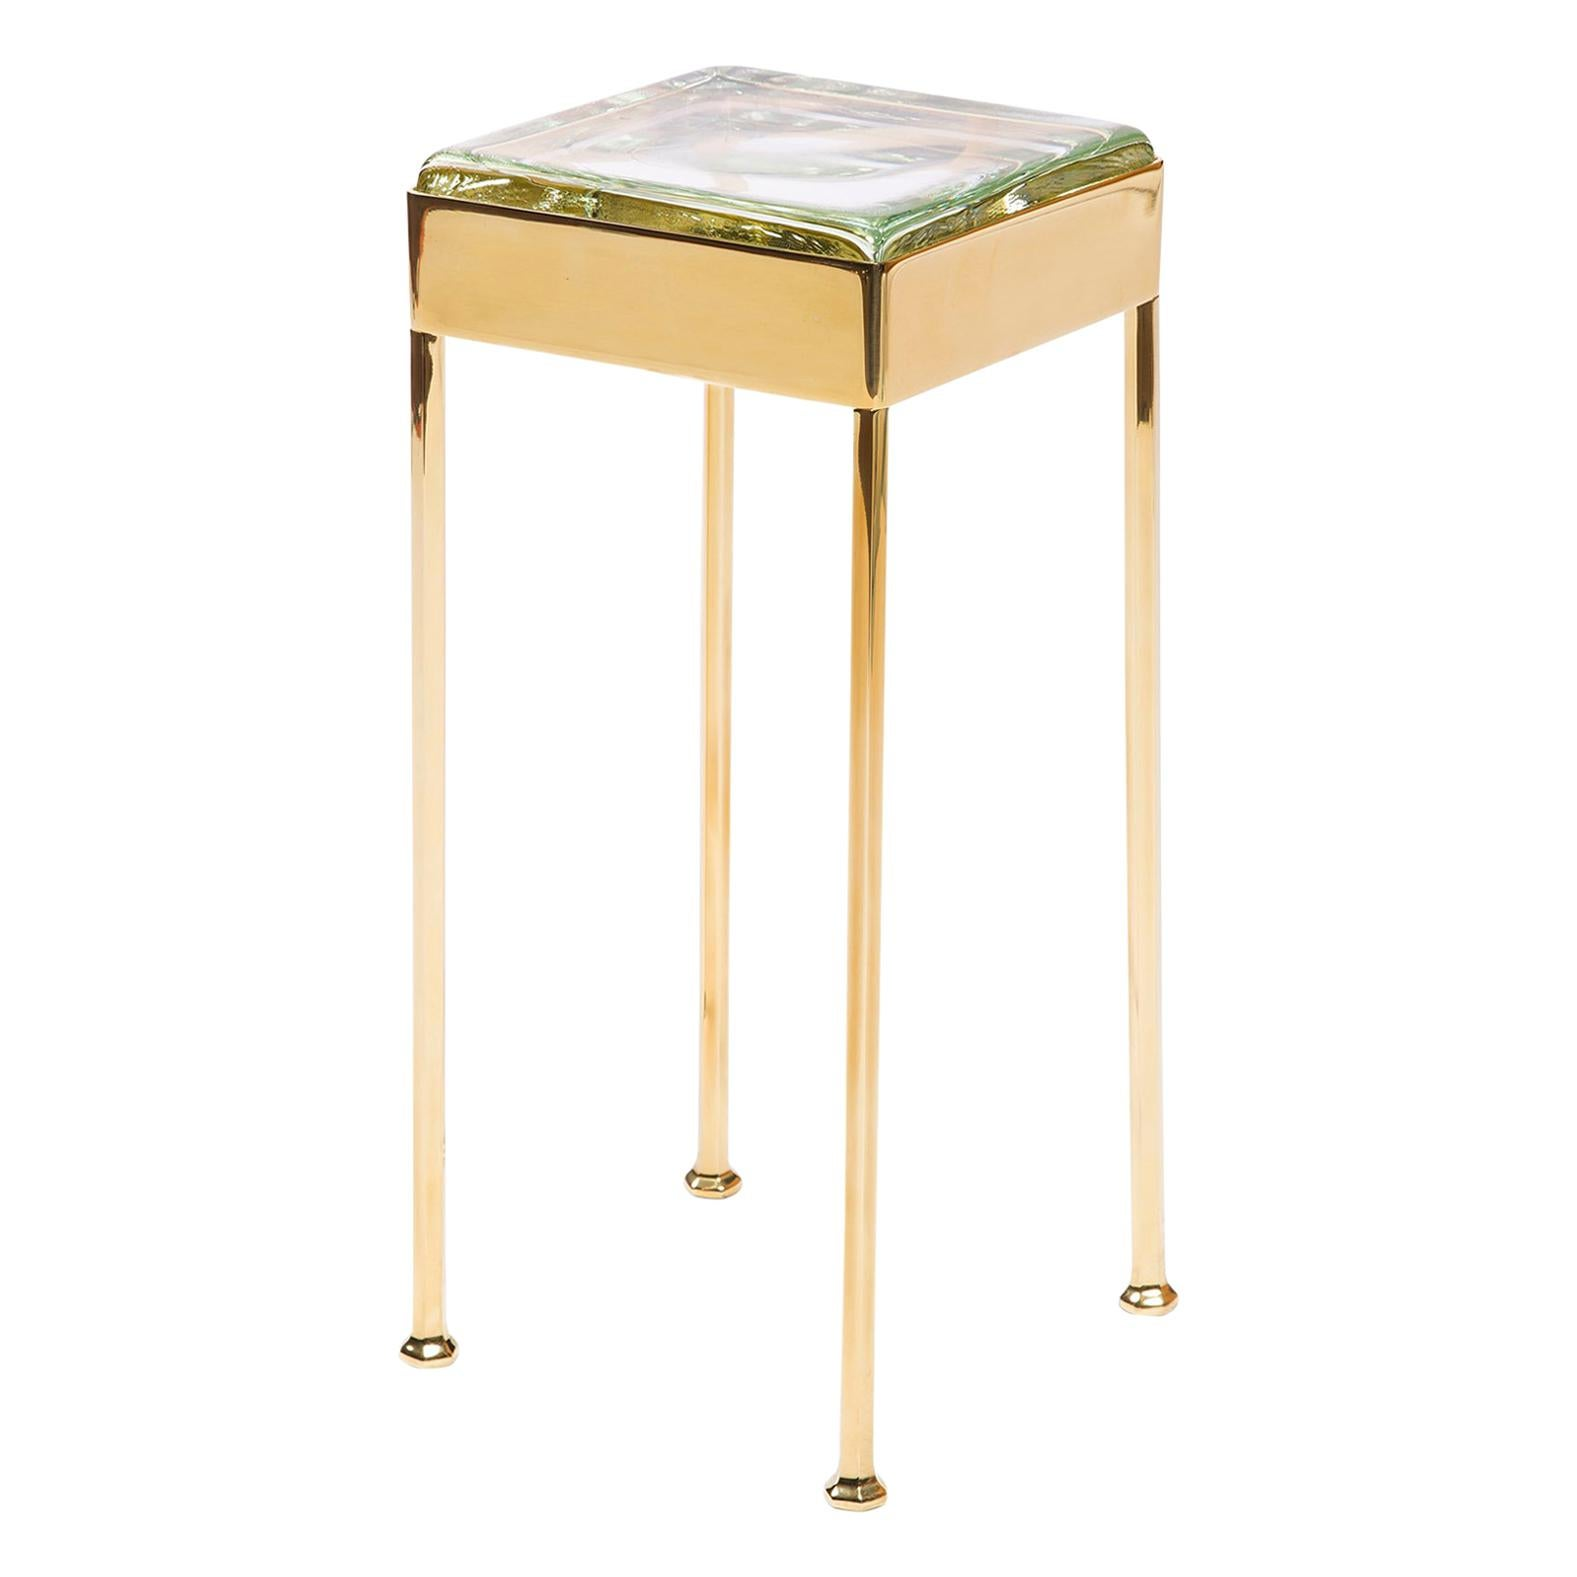 Antique and Vintage Side Tables 14609 For Sale at 1stdibs